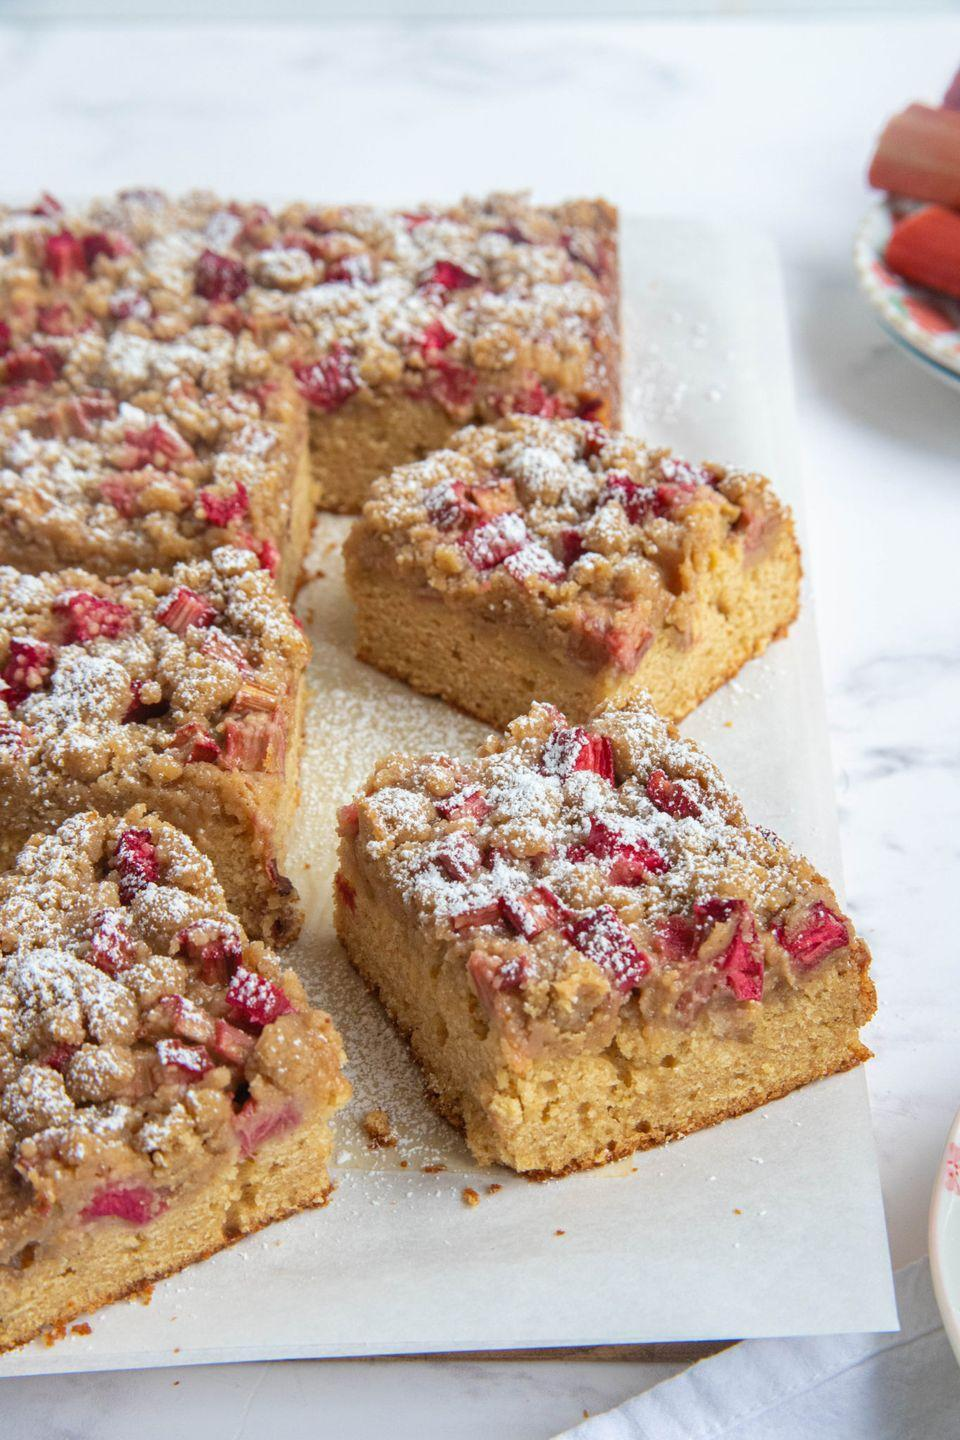 "<p>Put a spring-inspired twist on a regular crumb cake with this rhubarb version. It'll taste delicious with an after dinner coffee.</p><p><strong>Get the recipe at <a href=""https://bakesbybrownsugar.com/rhubarb-crumb-cake/"" rel=""nofollow noopener"" target=""_blank"" data-ylk=""slk:Bakes by Brown Sugar"" class=""link rapid-noclick-resp"">Bakes by Brown Sugar</a>.</strong></p><p><strong><a class=""link rapid-noclick-resp"" href=""https://go.redirectingat.com?id=74968X1596630&url=https%3A%2F%2Fwww.walmart.com%2Fsearch%2F%3Fquery%3Dmeasuring%2Bcups&sref=https%3A%2F%2Fwww.thepioneerwoman.com%2Ffood-cooking%2Fmeals-menus%2Fg35408493%2Feaster-desserts%2F"" rel=""nofollow noopener"" target=""_blank"" data-ylk=""slk:SHOP MEASURING CUPS"">SHOP MEASURING CUPS</a><br></strong></p>"